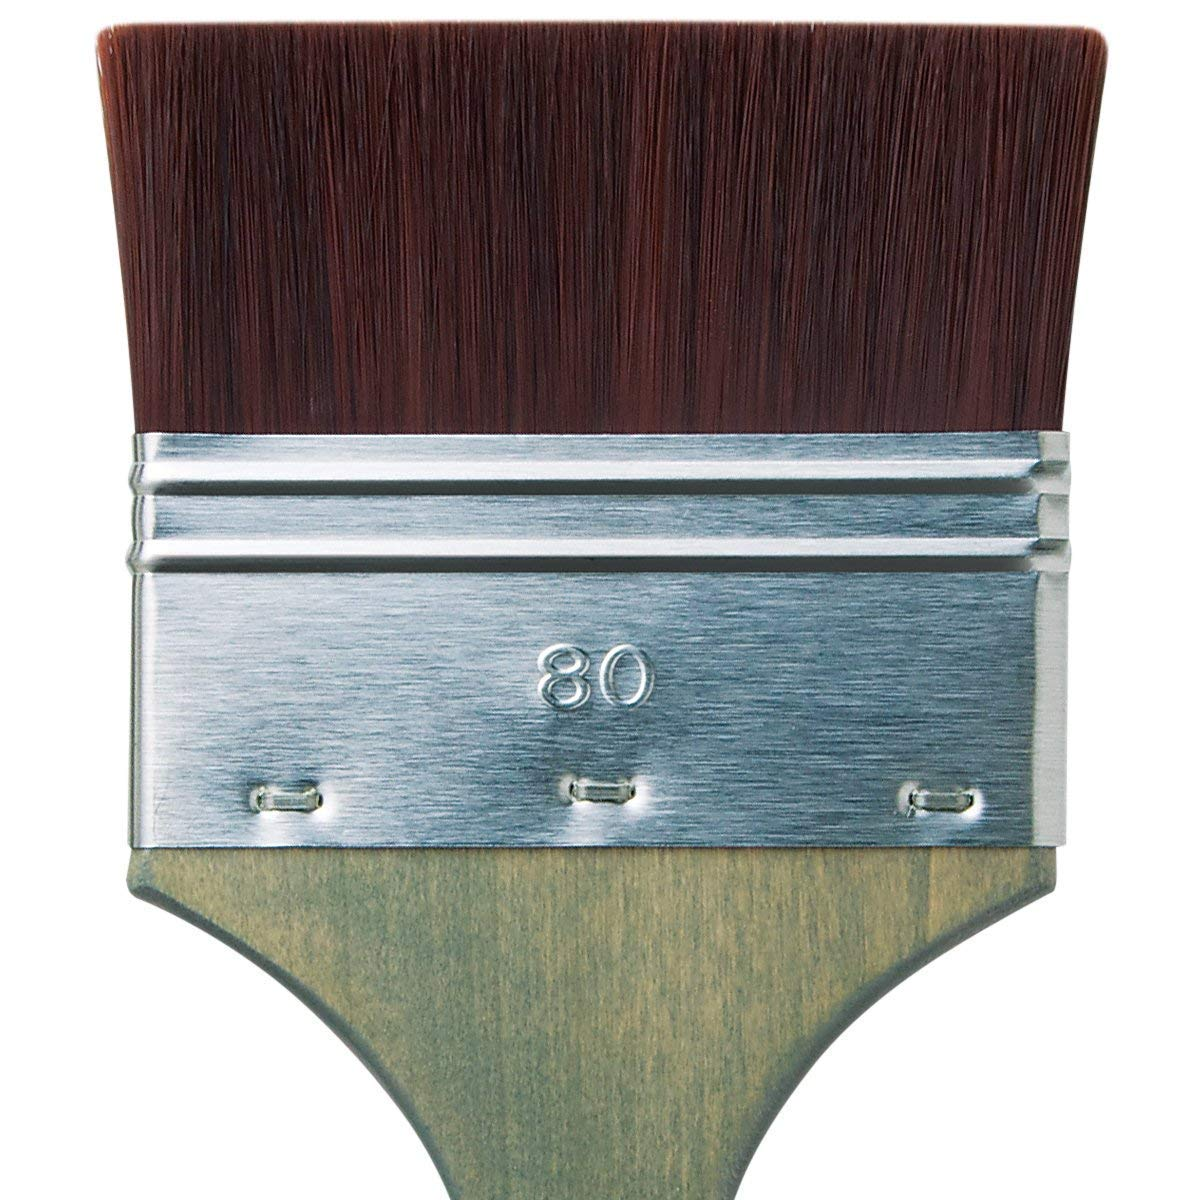 Round Extra-Strong Synthetic with Blue-Green Handle da Vinci Modeling Series 363 Forte Gaming and Craft Brush Size 3//0 363-3//0